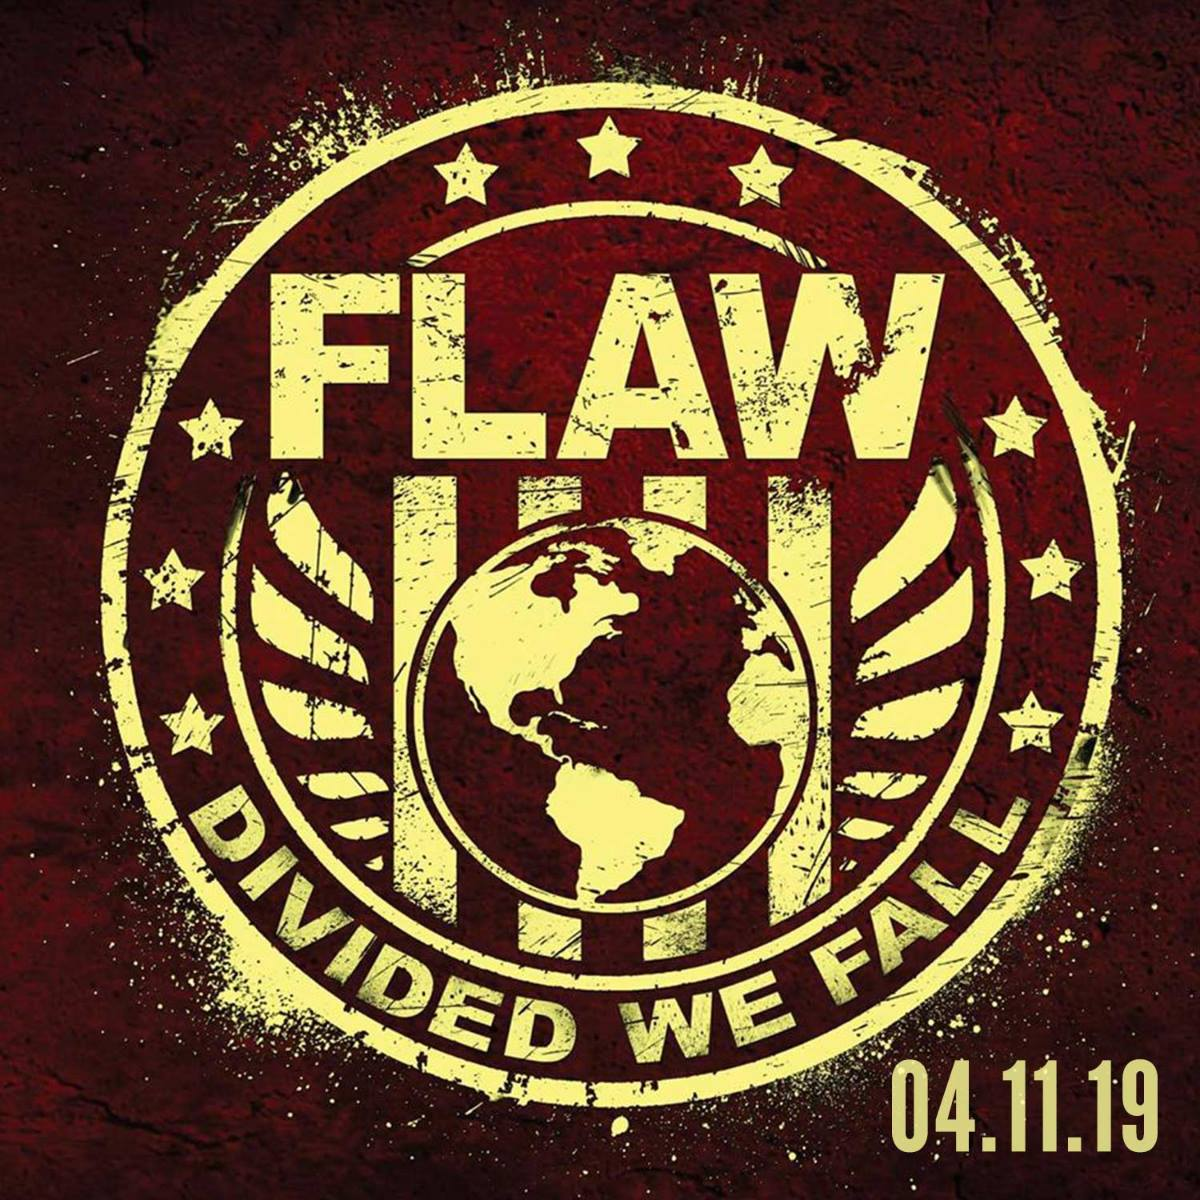 FLAW, The Mendenhall Experiment, Black Water Rising